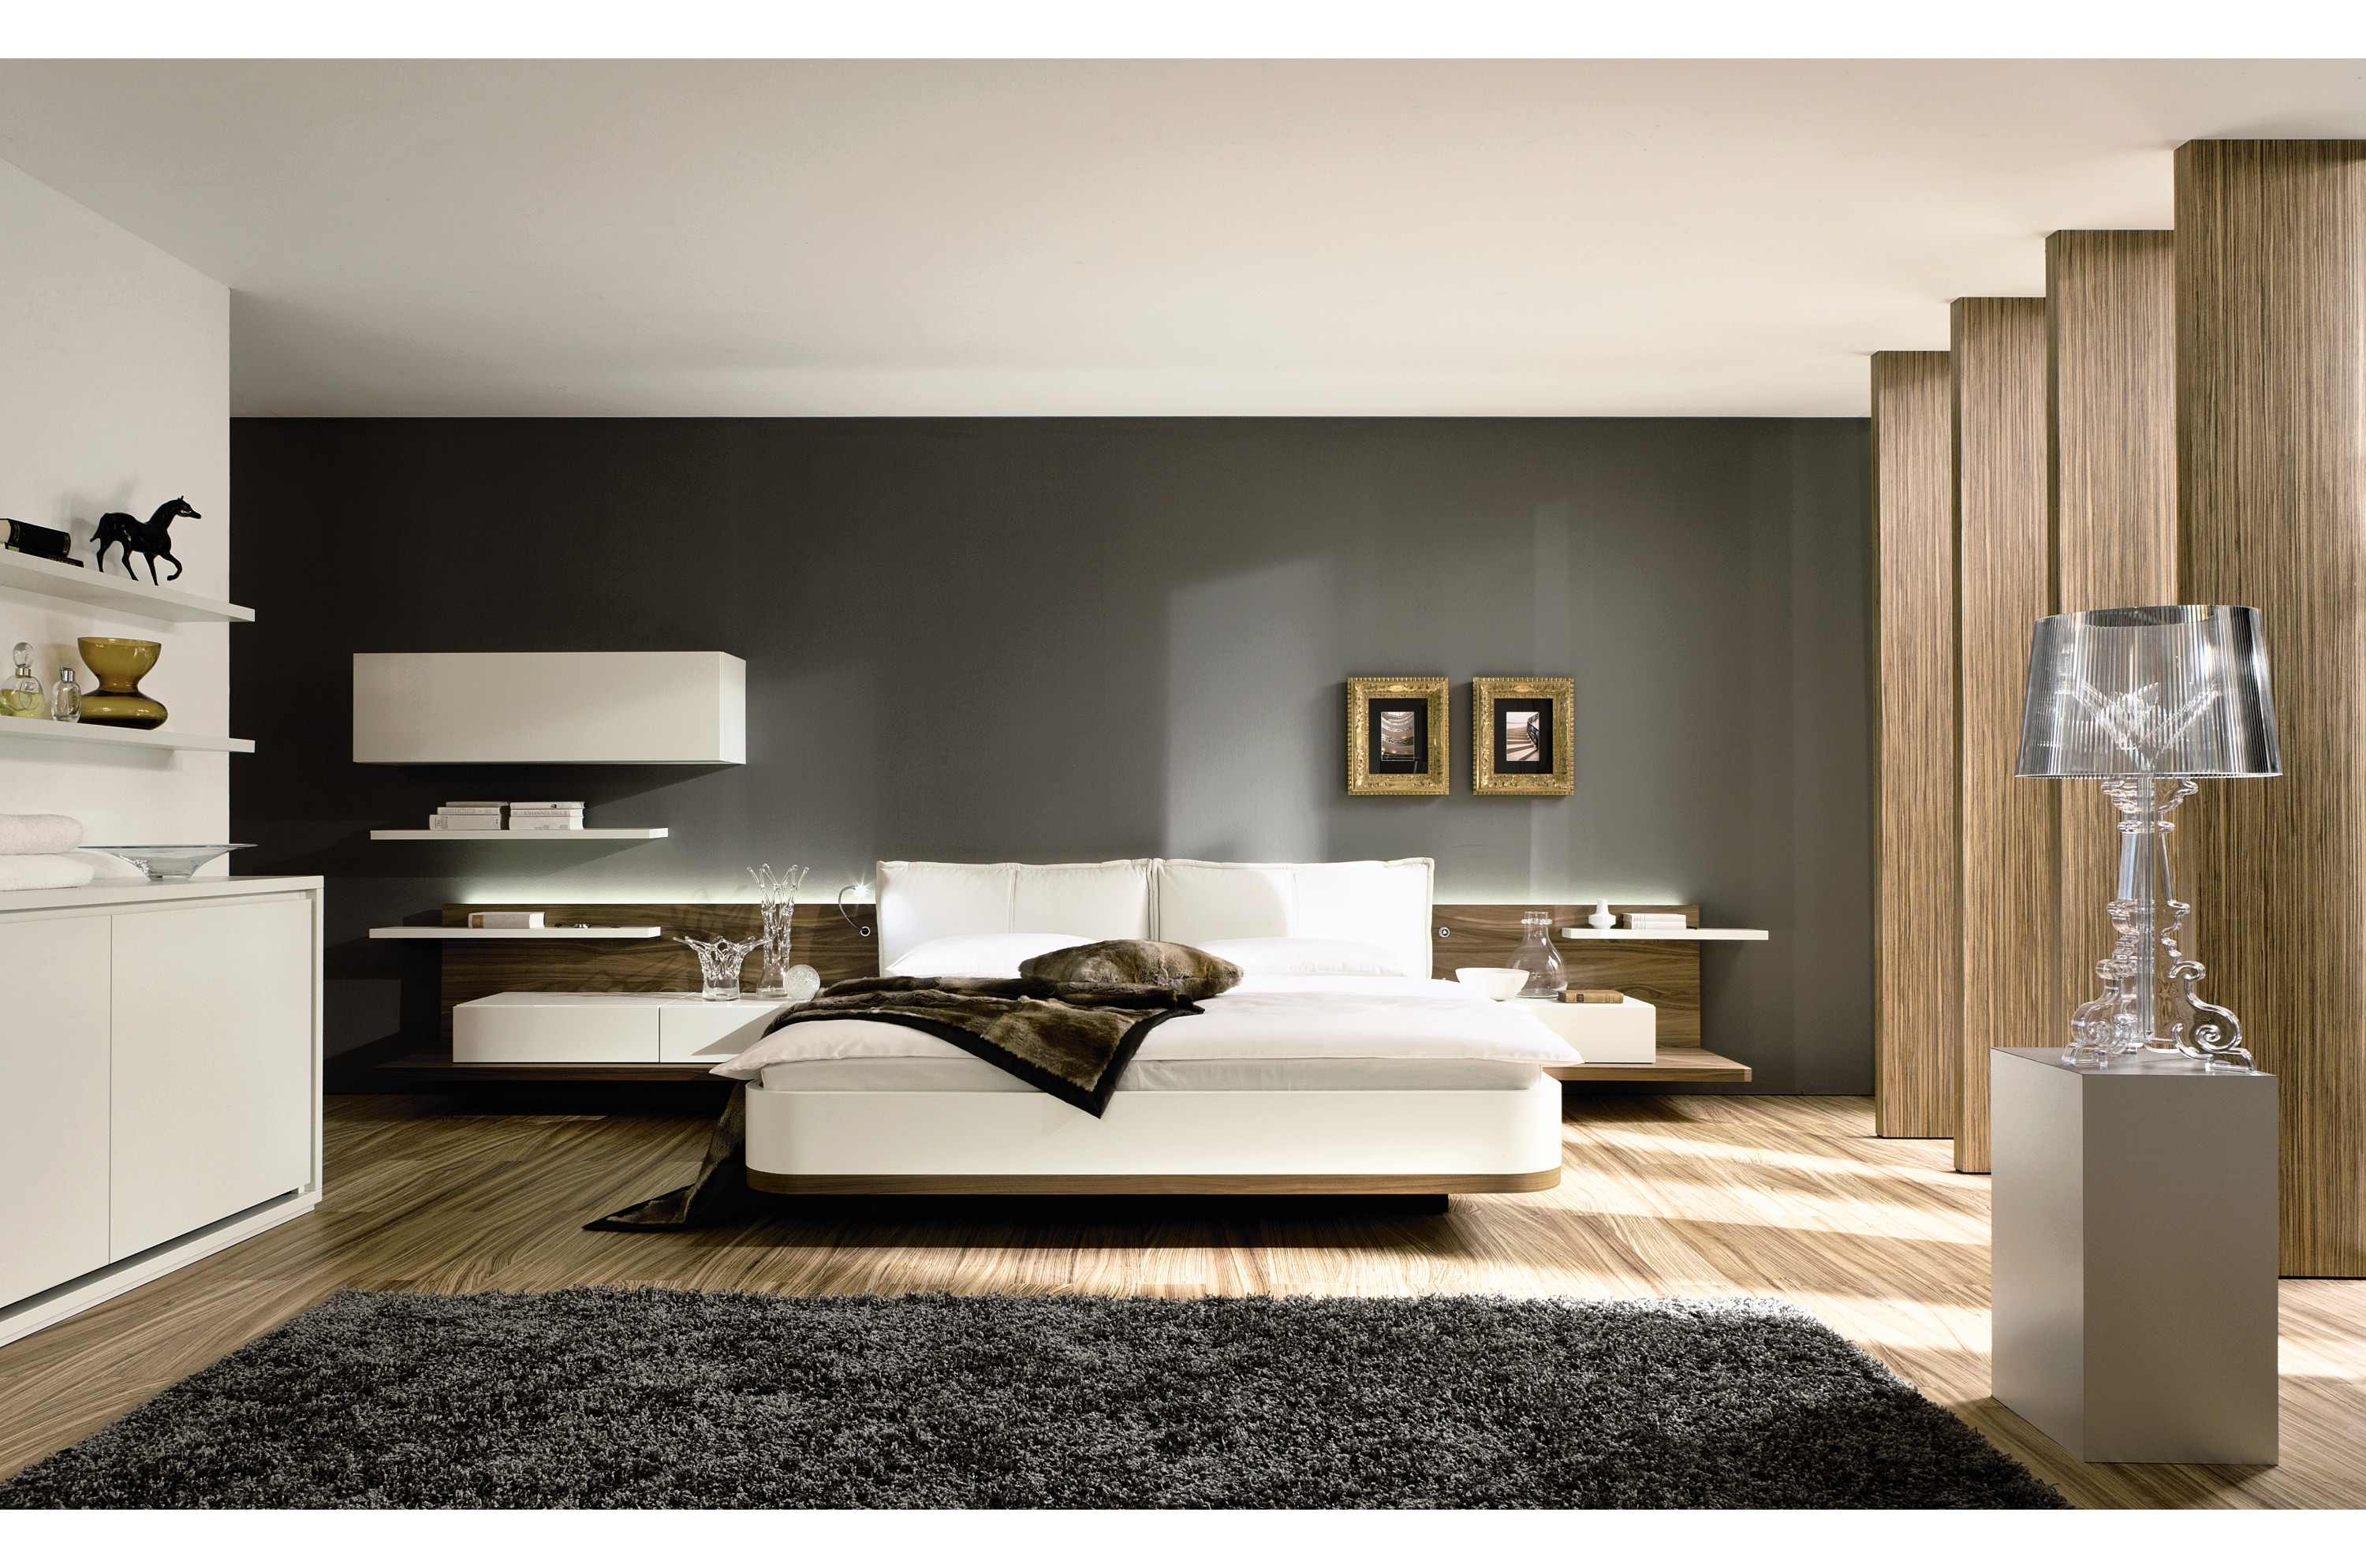 Modern bedroom innovation bedroom ideas interior design and many kodok demo for Deco badkamer taupe